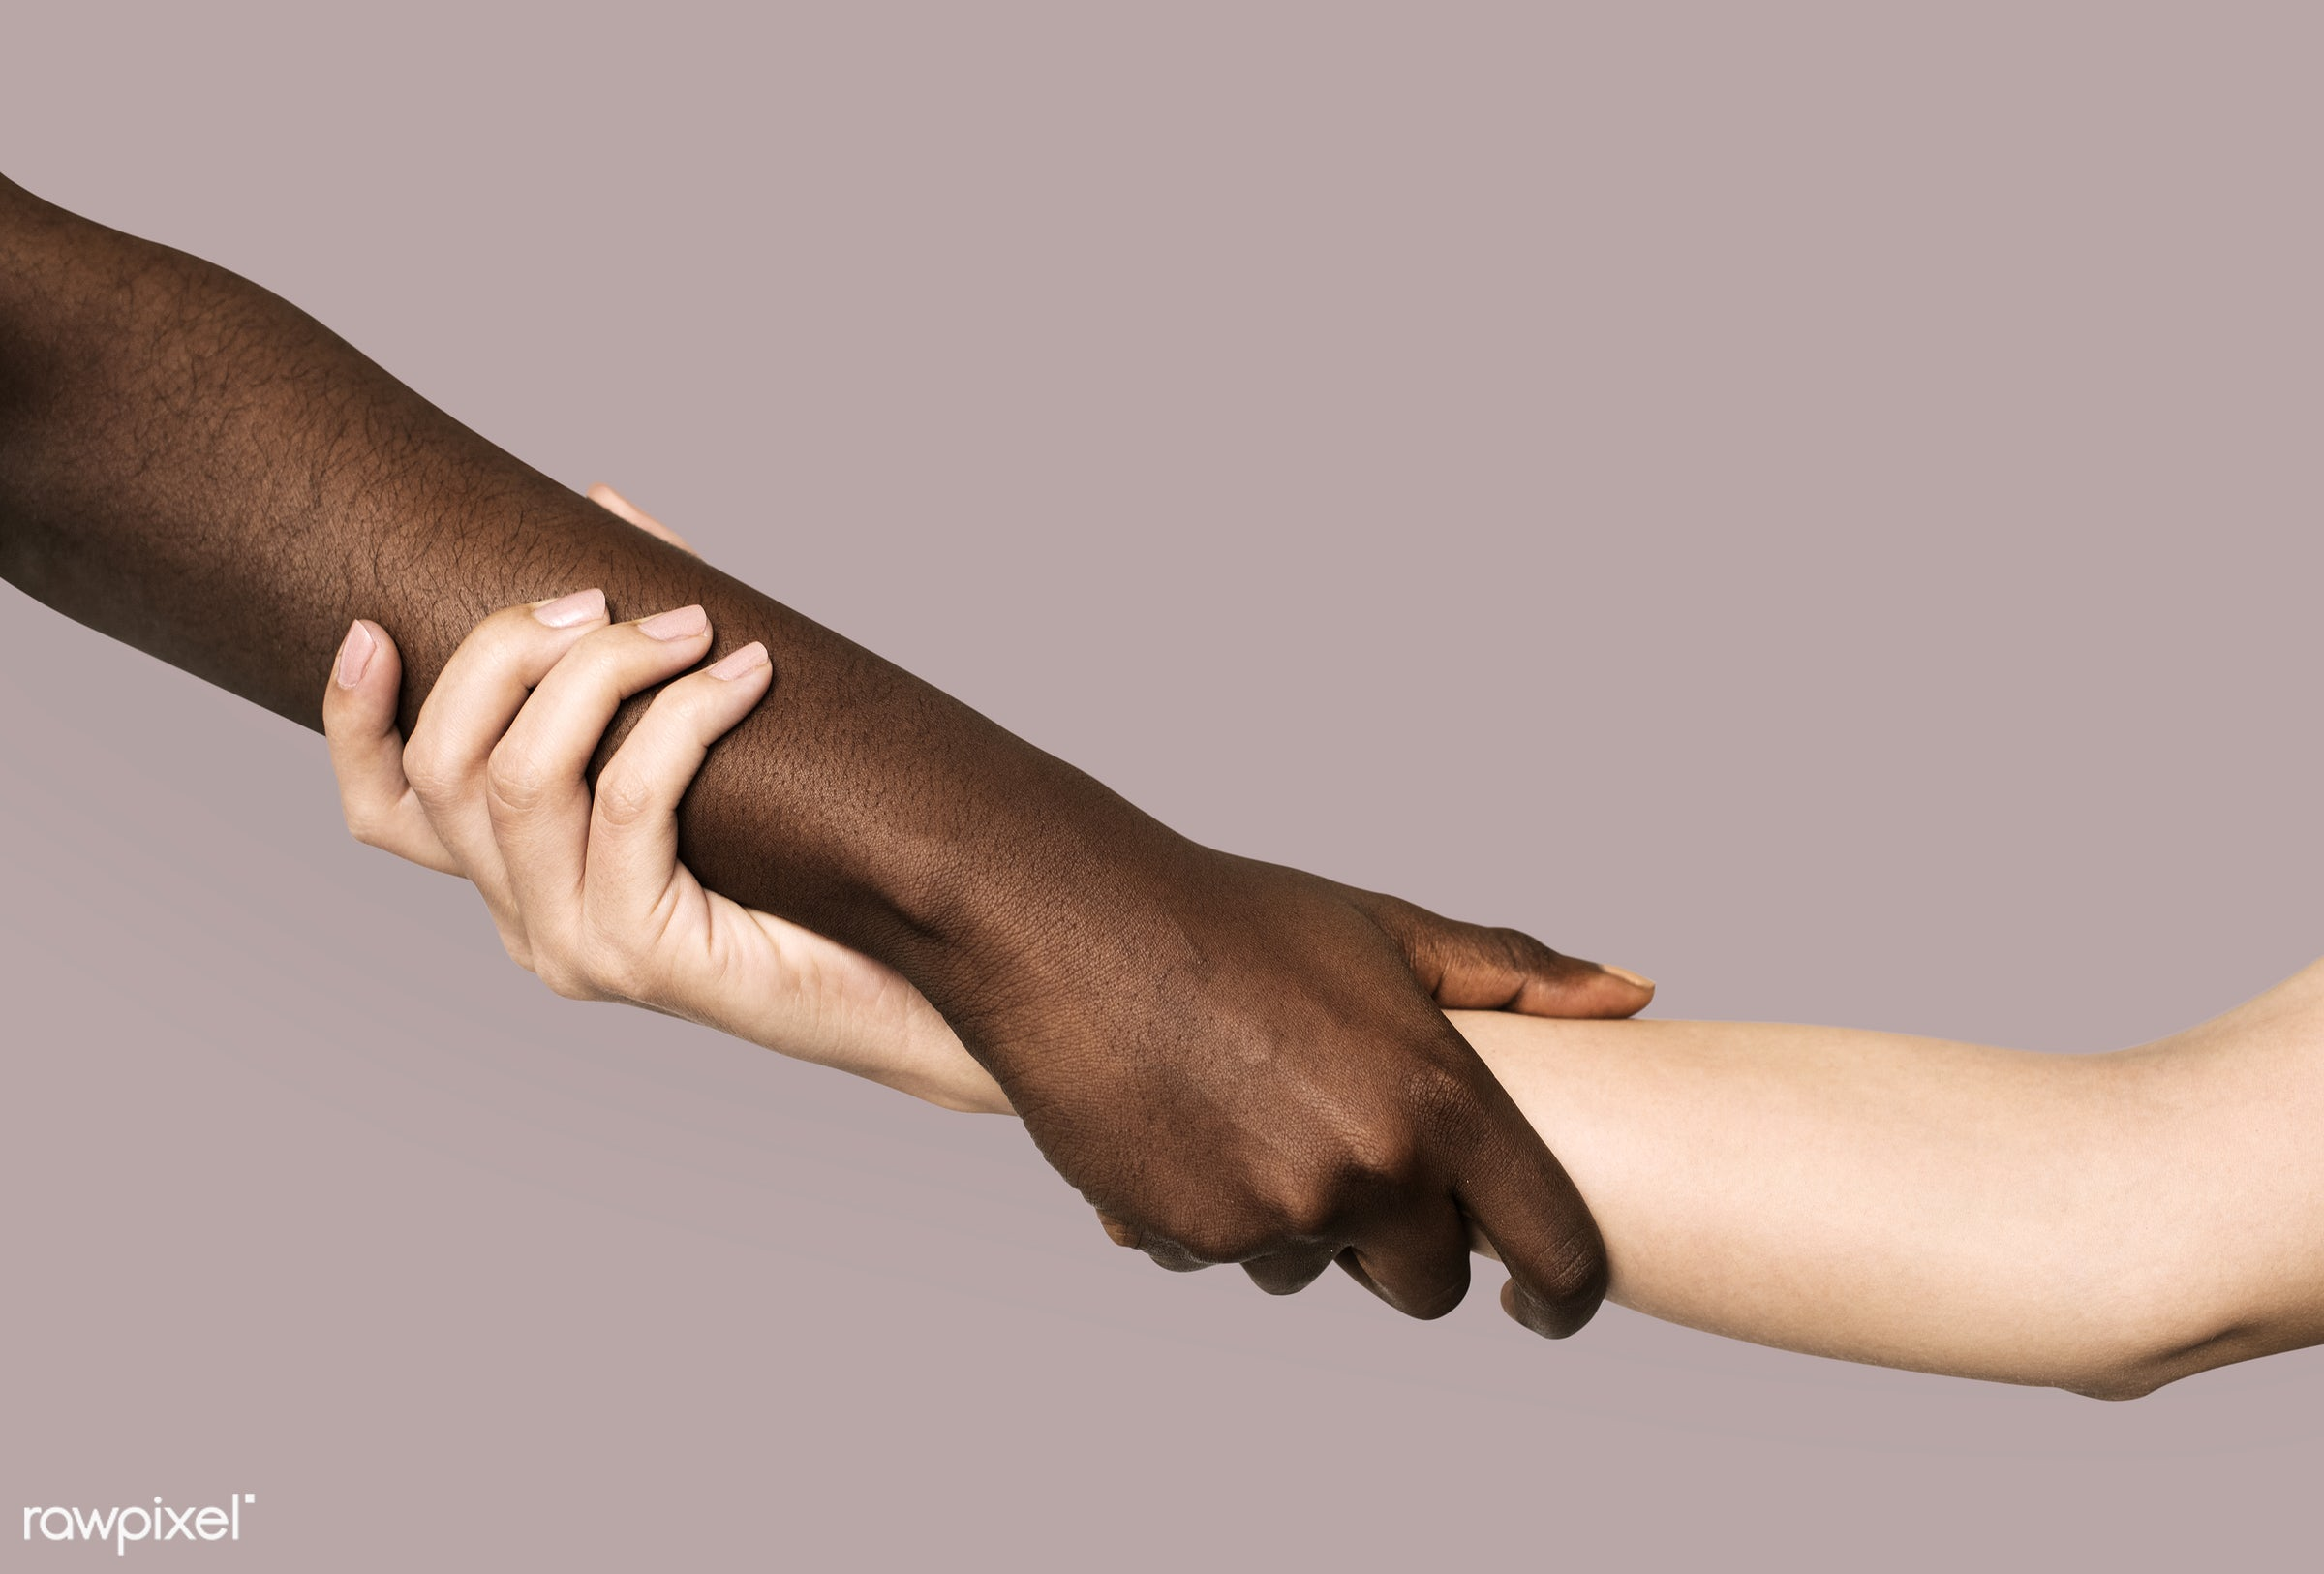 Hands together isolated - africa, african, african american, african descent, american, background, beige background, black...